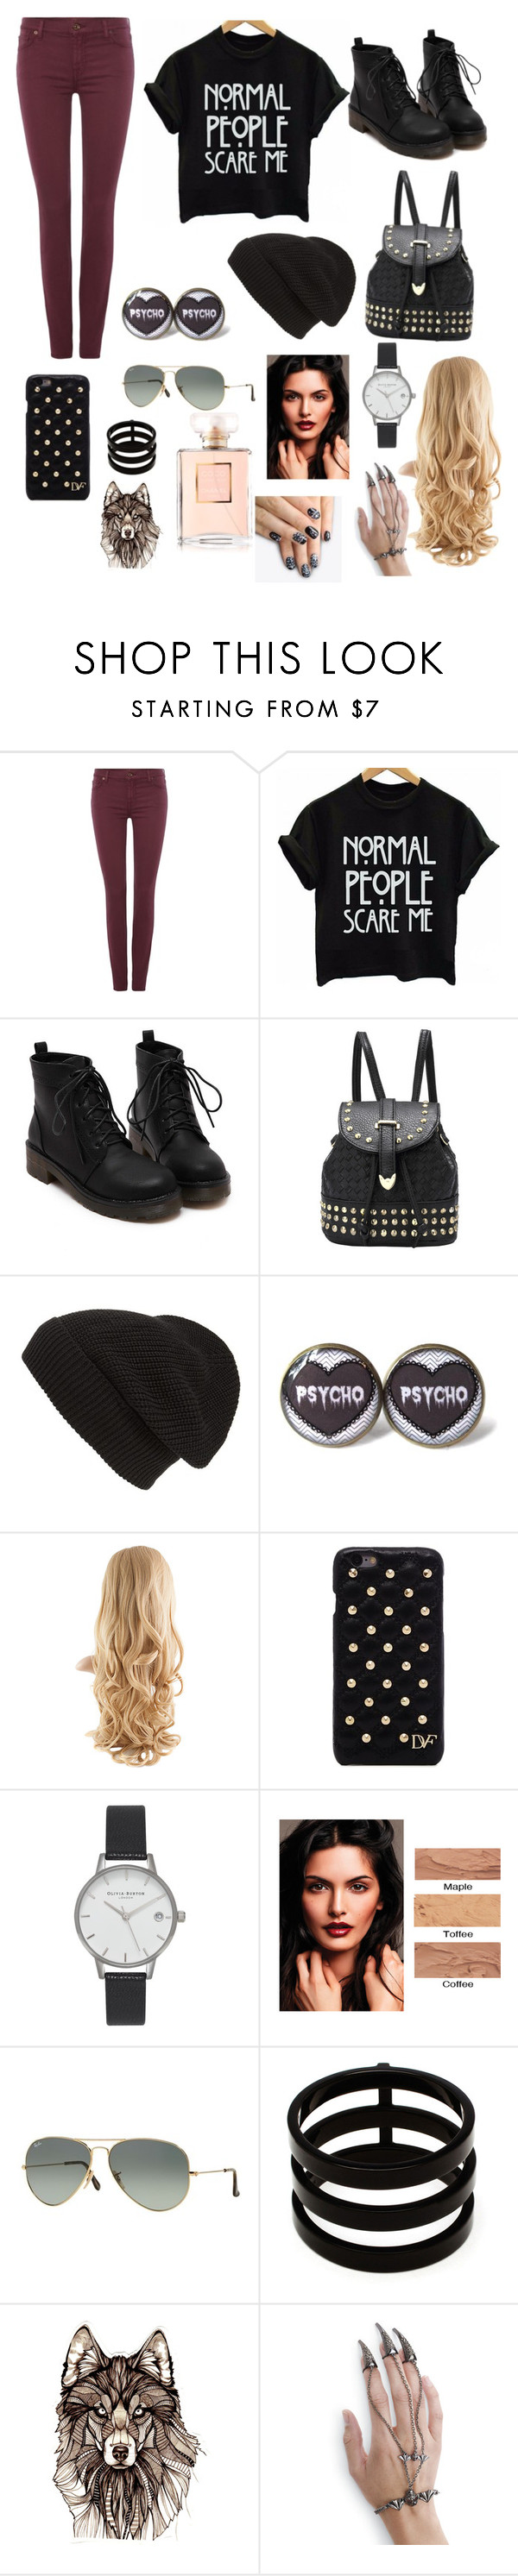 """""""Untitled #129"""" by emmajean239 ❤ liked on Polyvore featuring 7 For All Mankind, Phase 3, Diane Von Furstenberg, Olivia Burton, Ray-Ban, Repossi and alfa.K"""